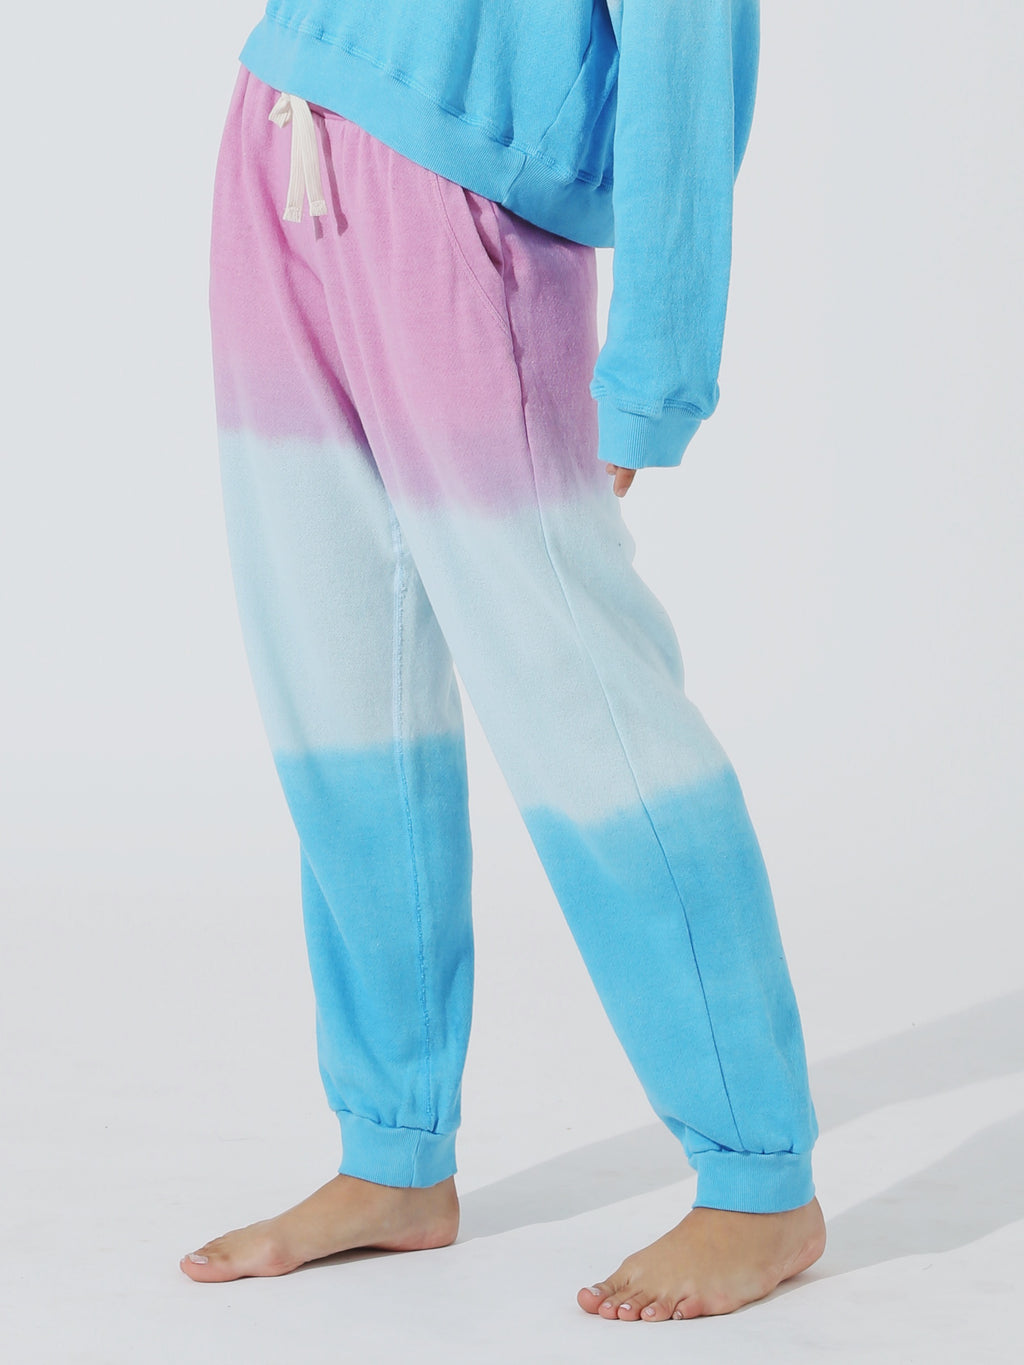 Harbor Sweatpant - Lilac / Sea Salt / Azul